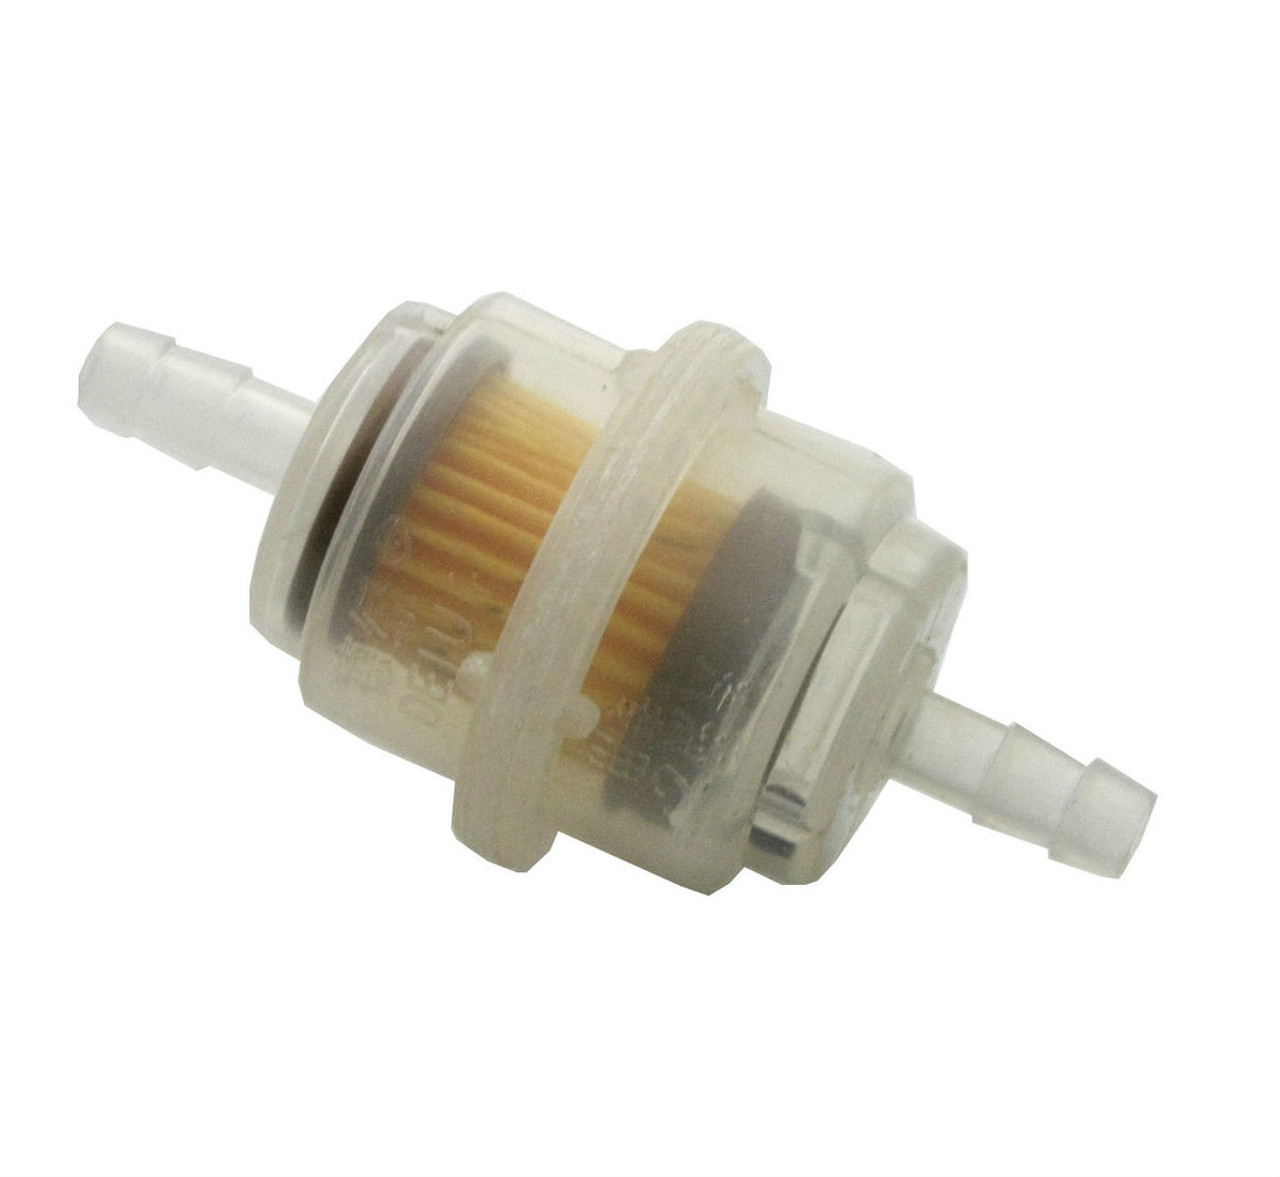 6mm Paper Fuel Filter with Magnet